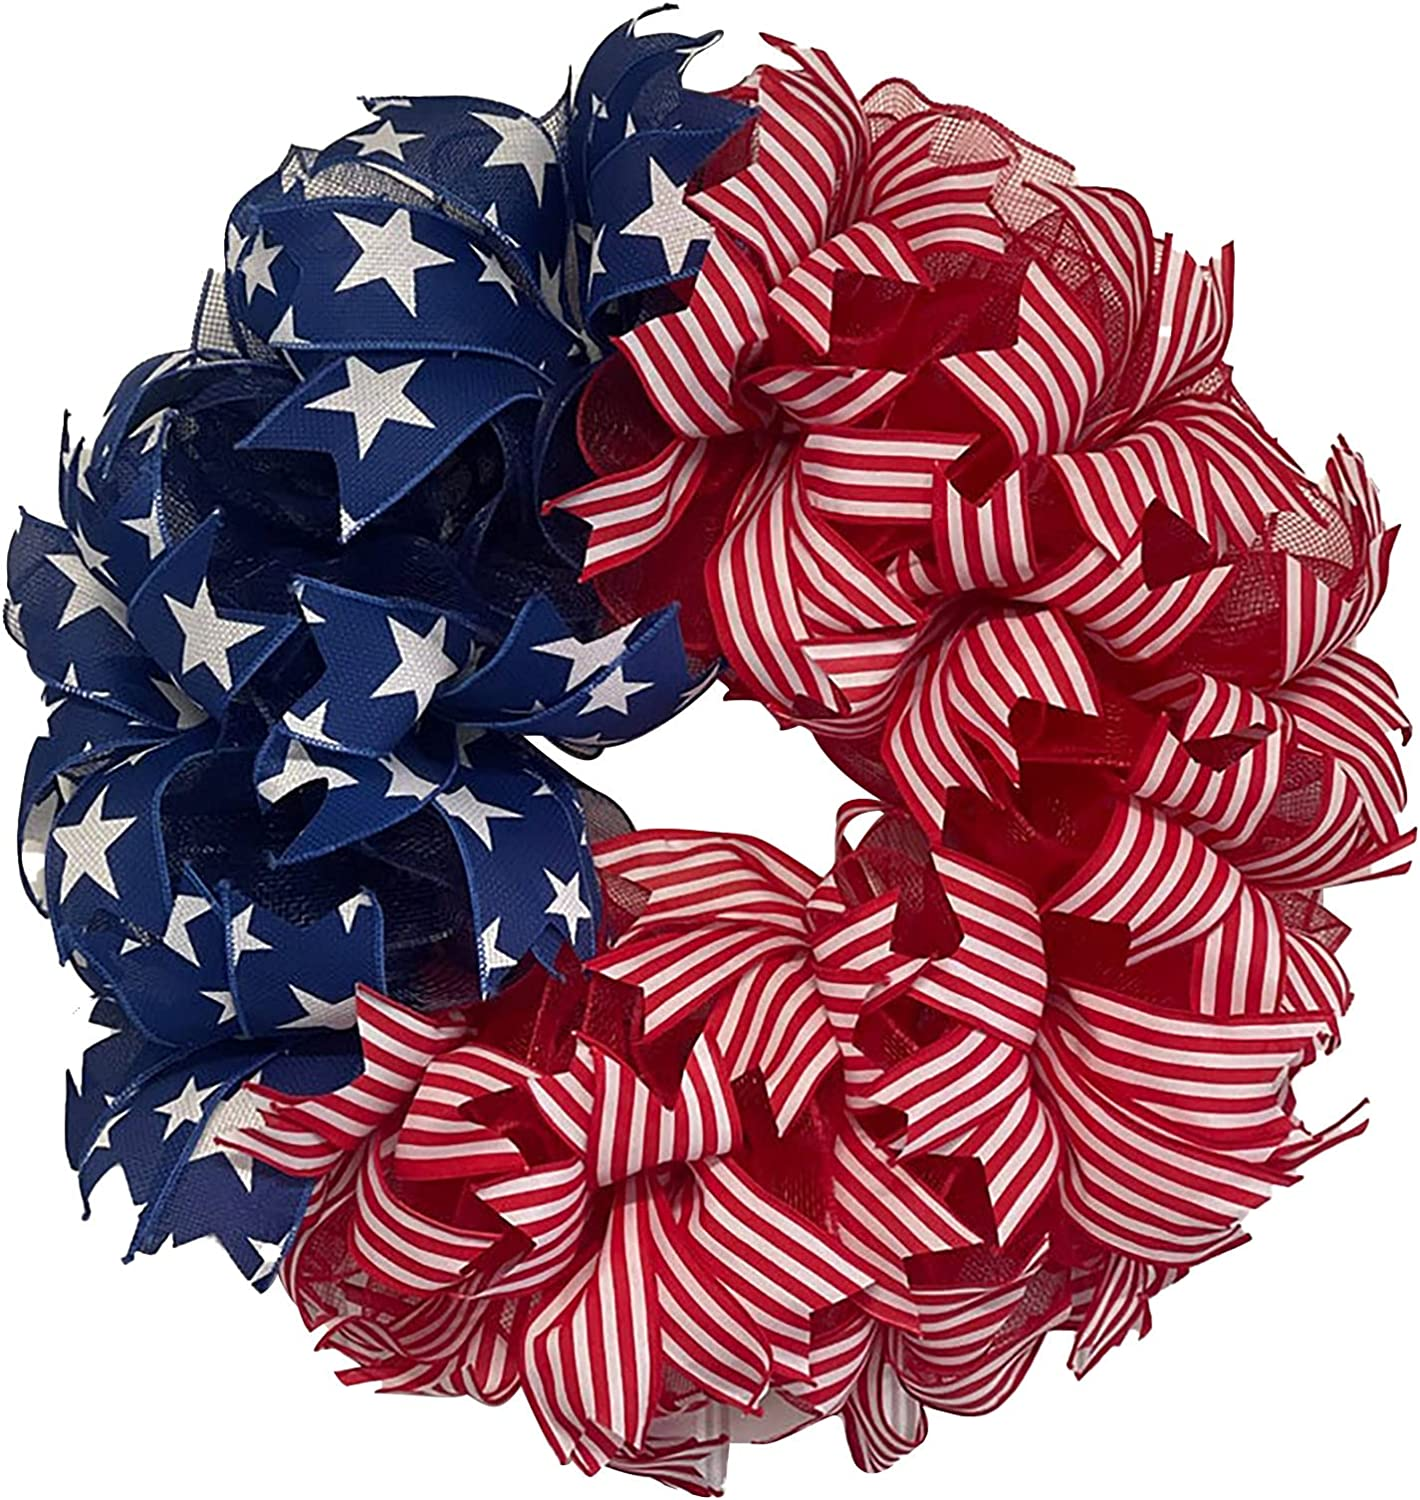 4th of July Decorations Wreath Outdoor Decor Patriotic Independence Day Front Door Wreaths Outside Porch Hanging Decoration for Spring Summer Holiday (F)